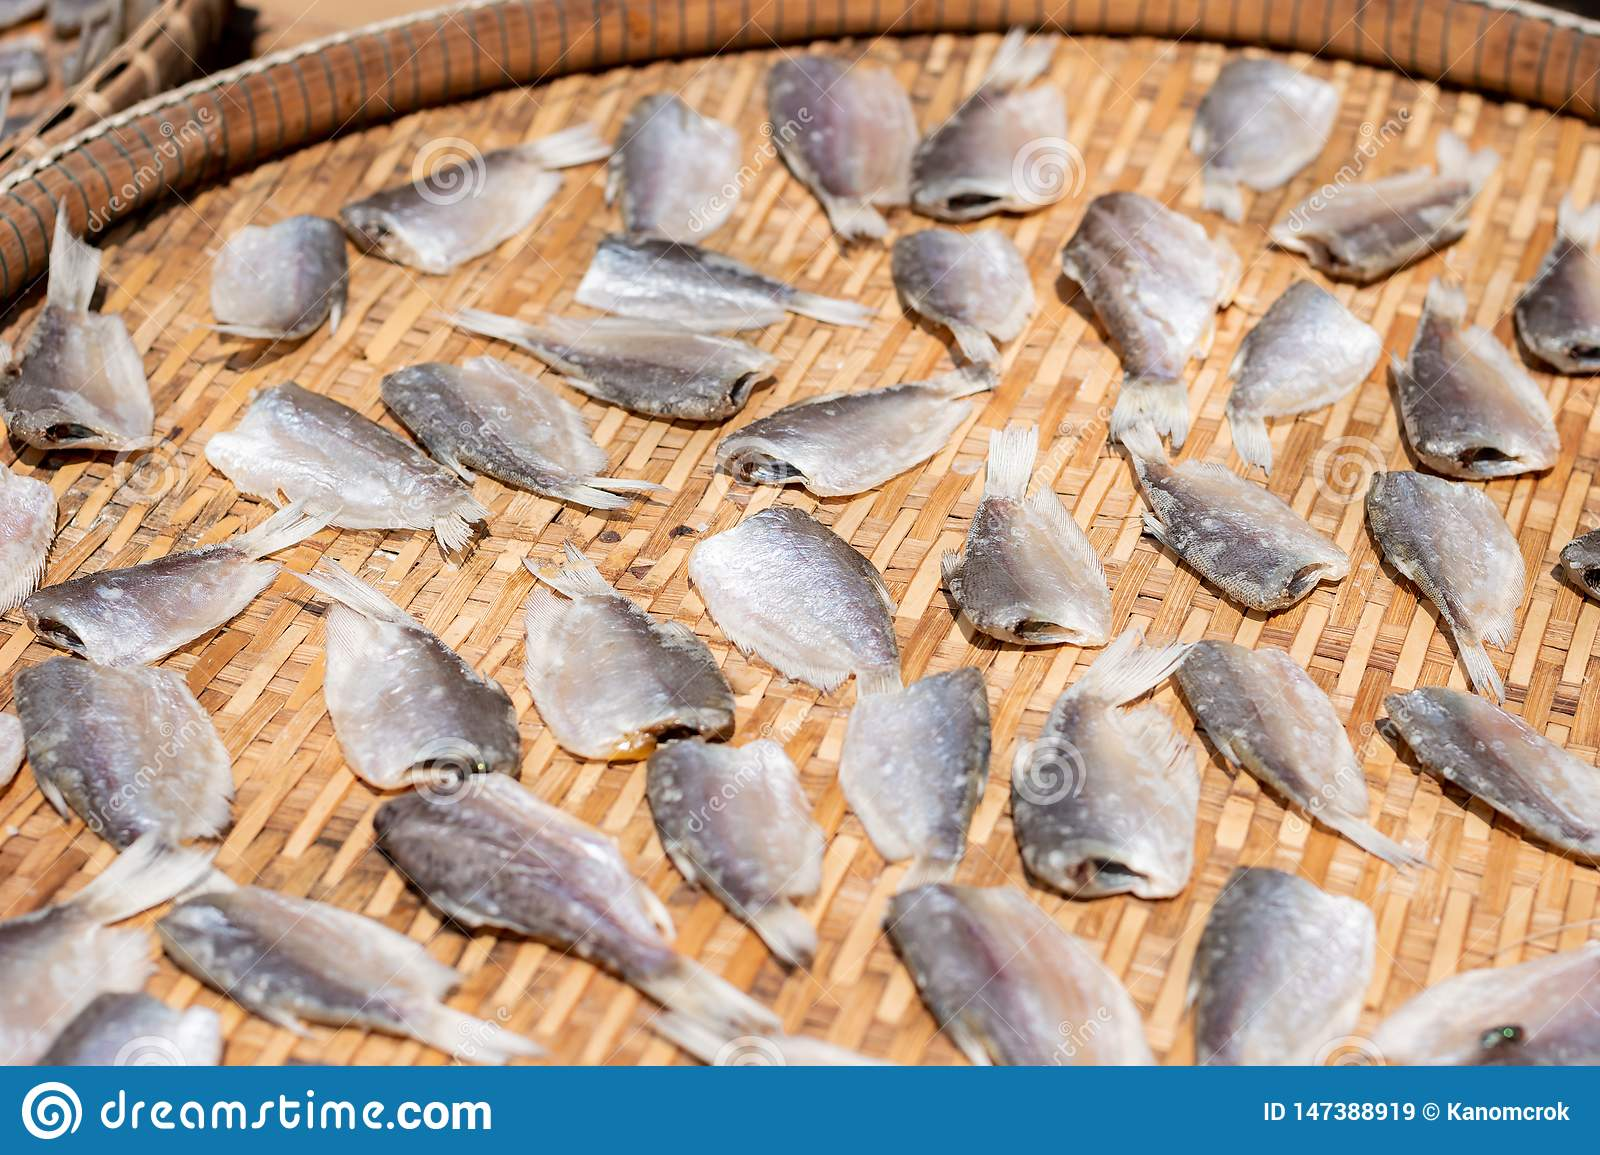 Make dry fish with sunny